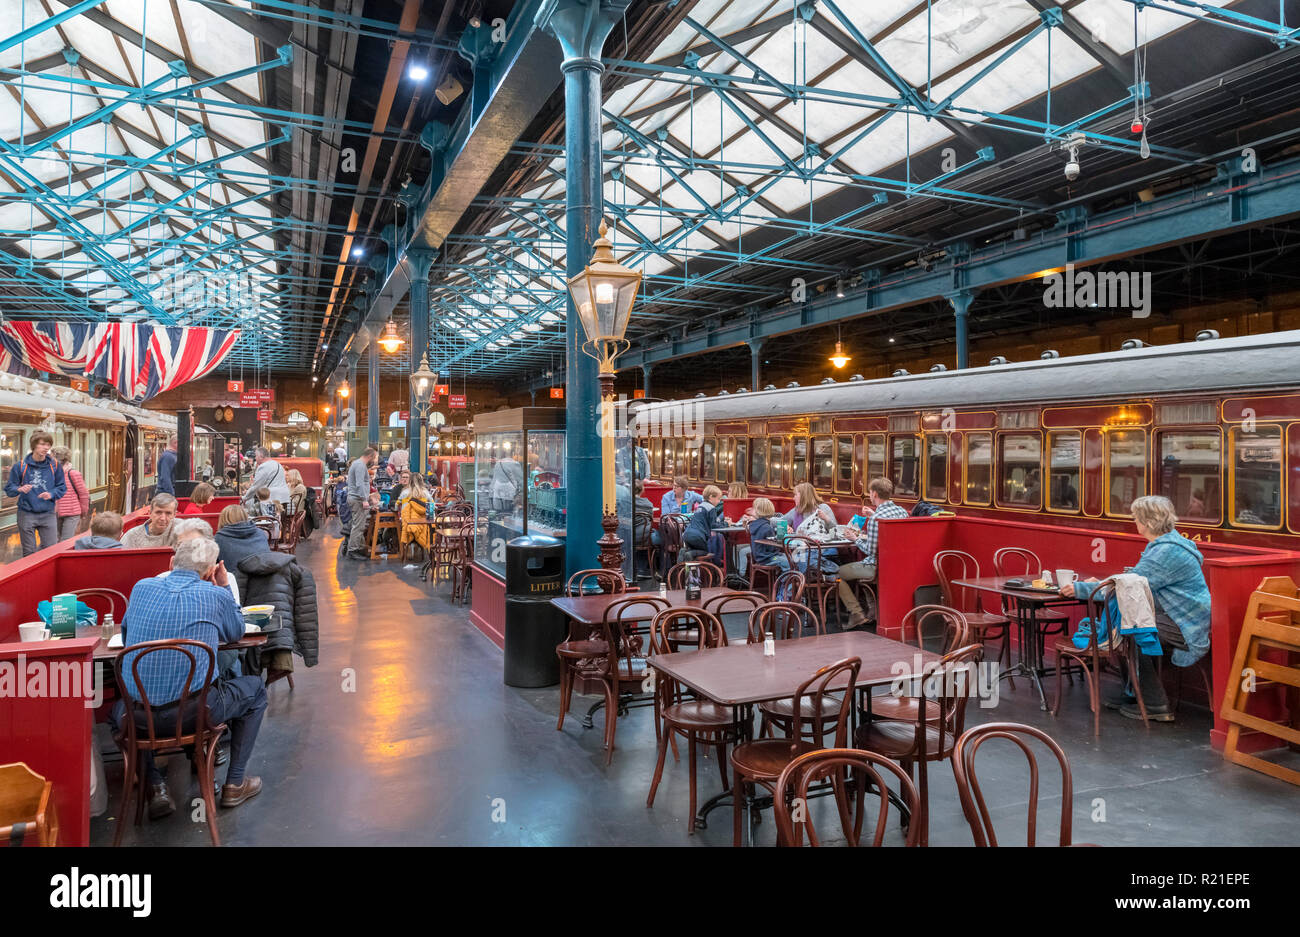 Train carriages and cafe in the Station Hall, National Railway Museum, York, North Yorkshire, England UK - Stock Image